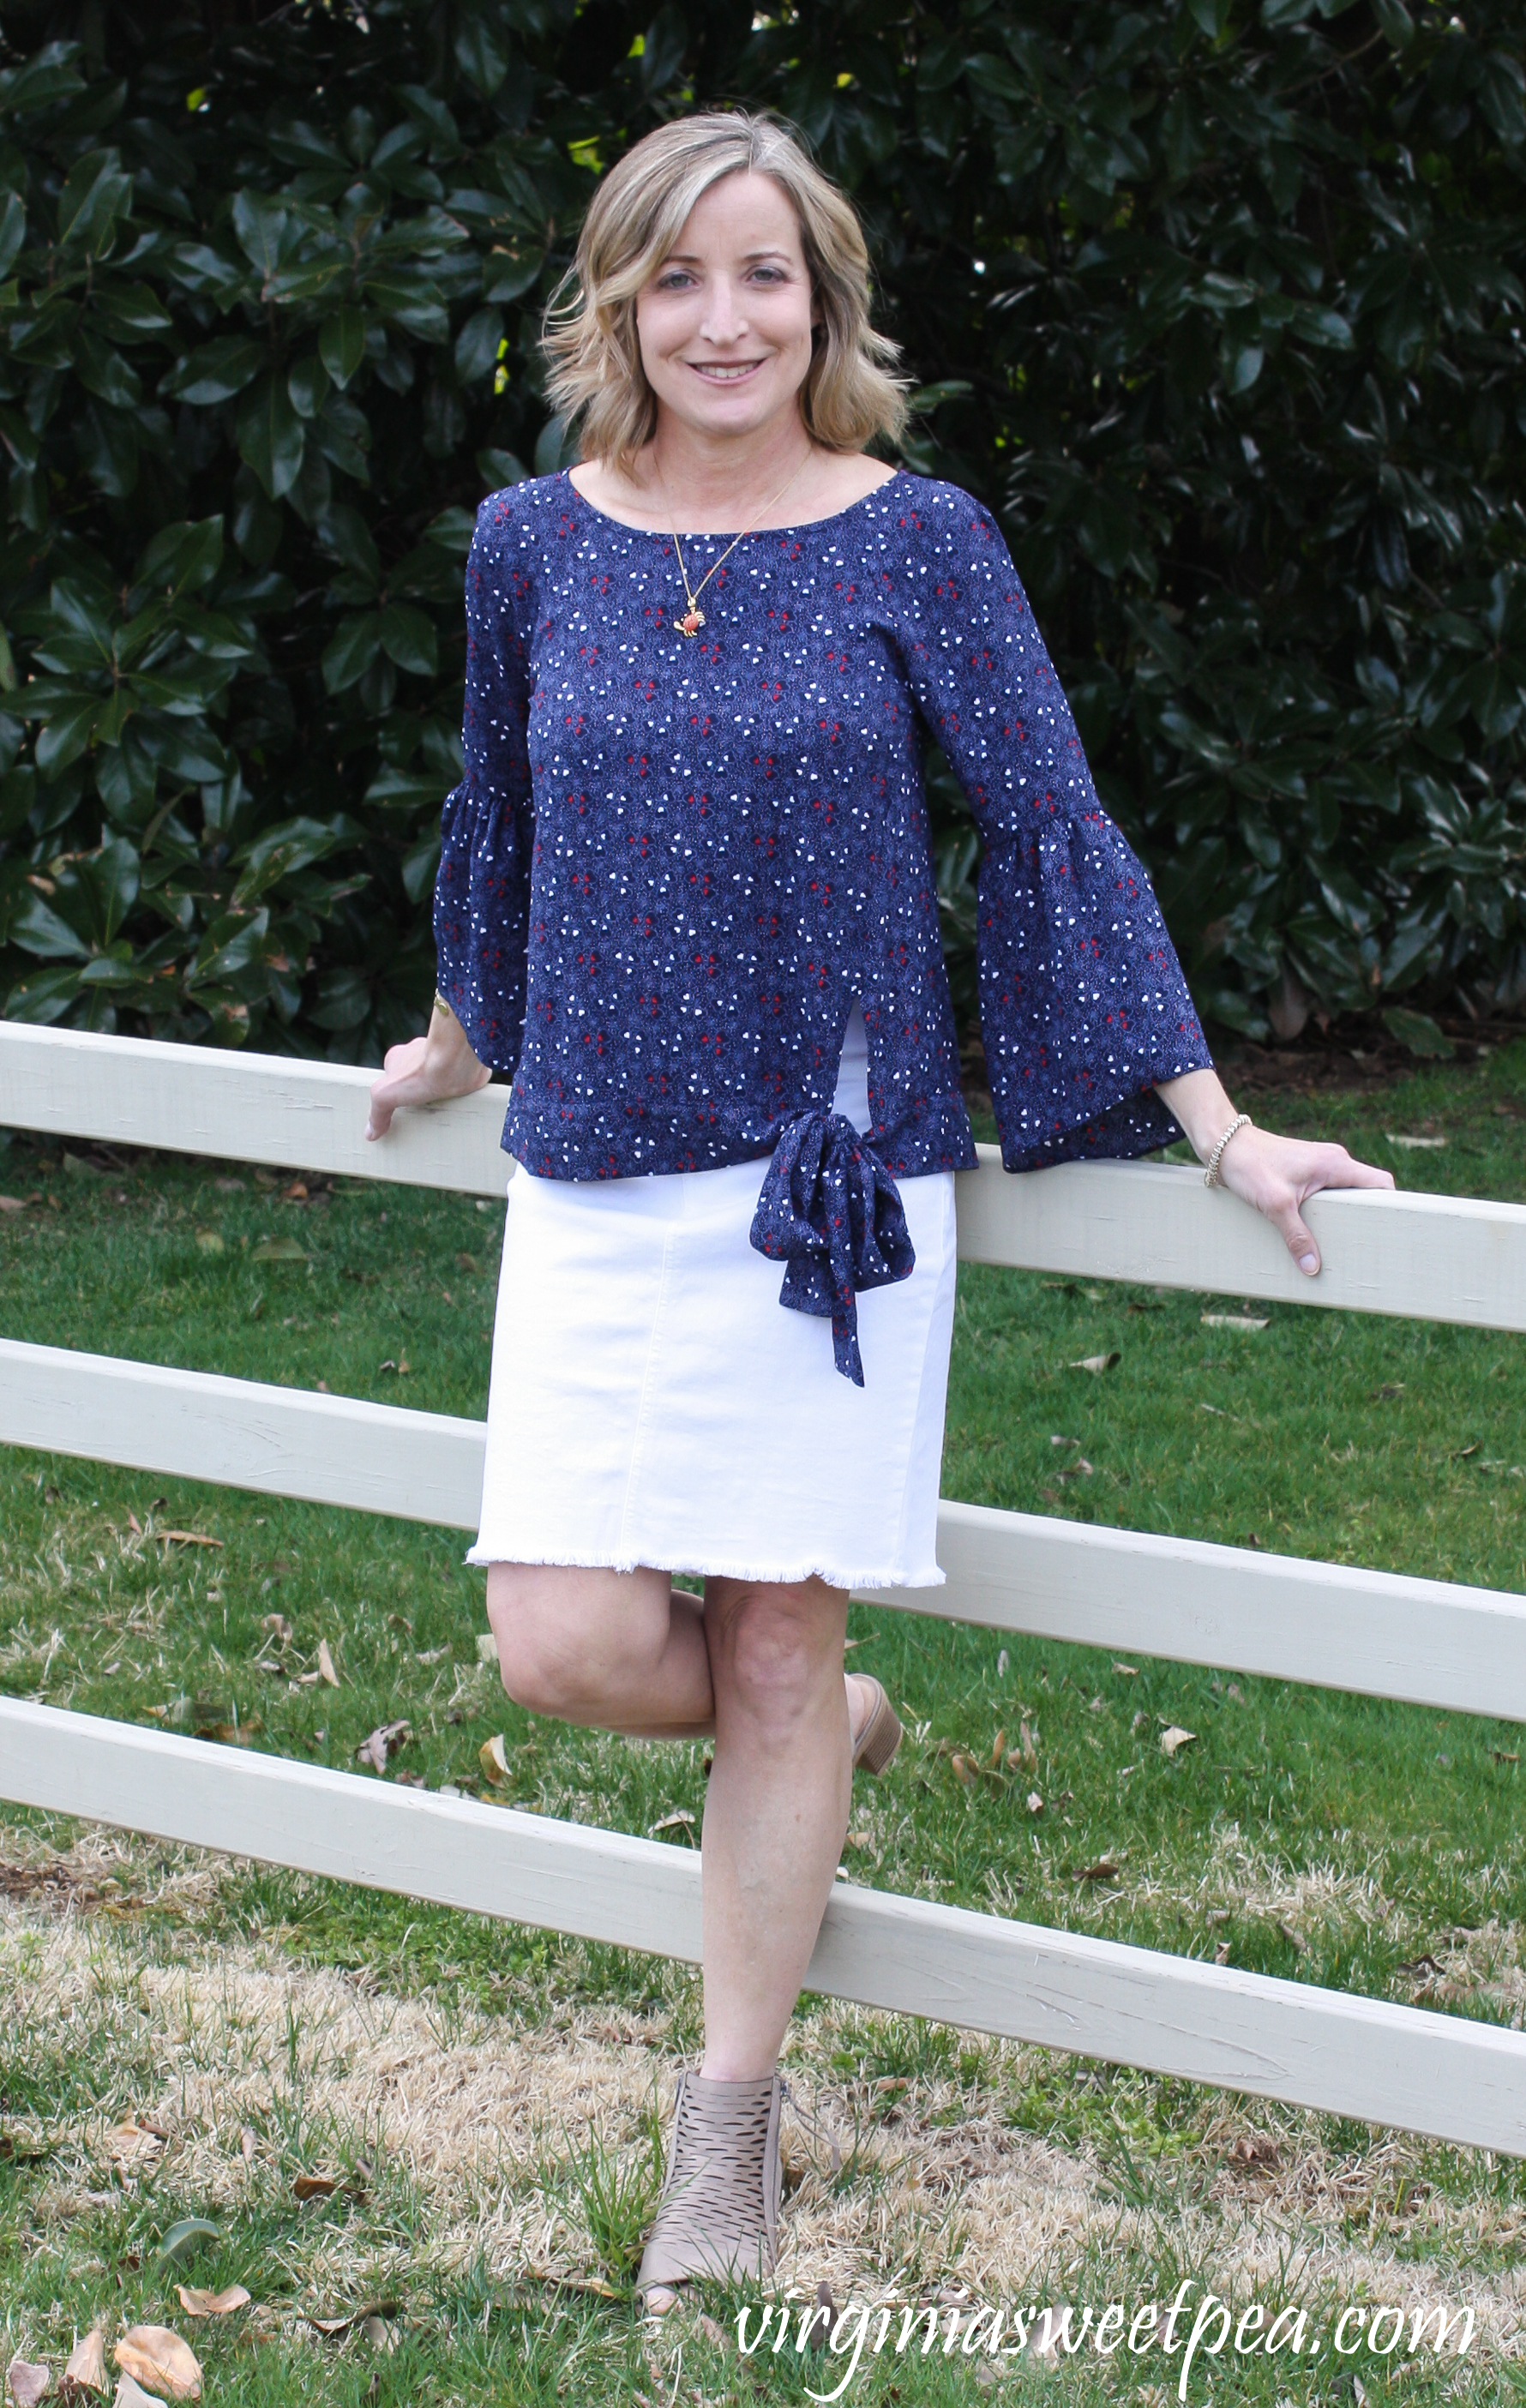 Stitch Fix Review for April 2019 - Michael Kors Jorja Tie Detail Blouse with Jen7 Oliana Raw Hem Denim Skirt #stitchfix #stitchfixreview #stitchfixspring #springstitchfix